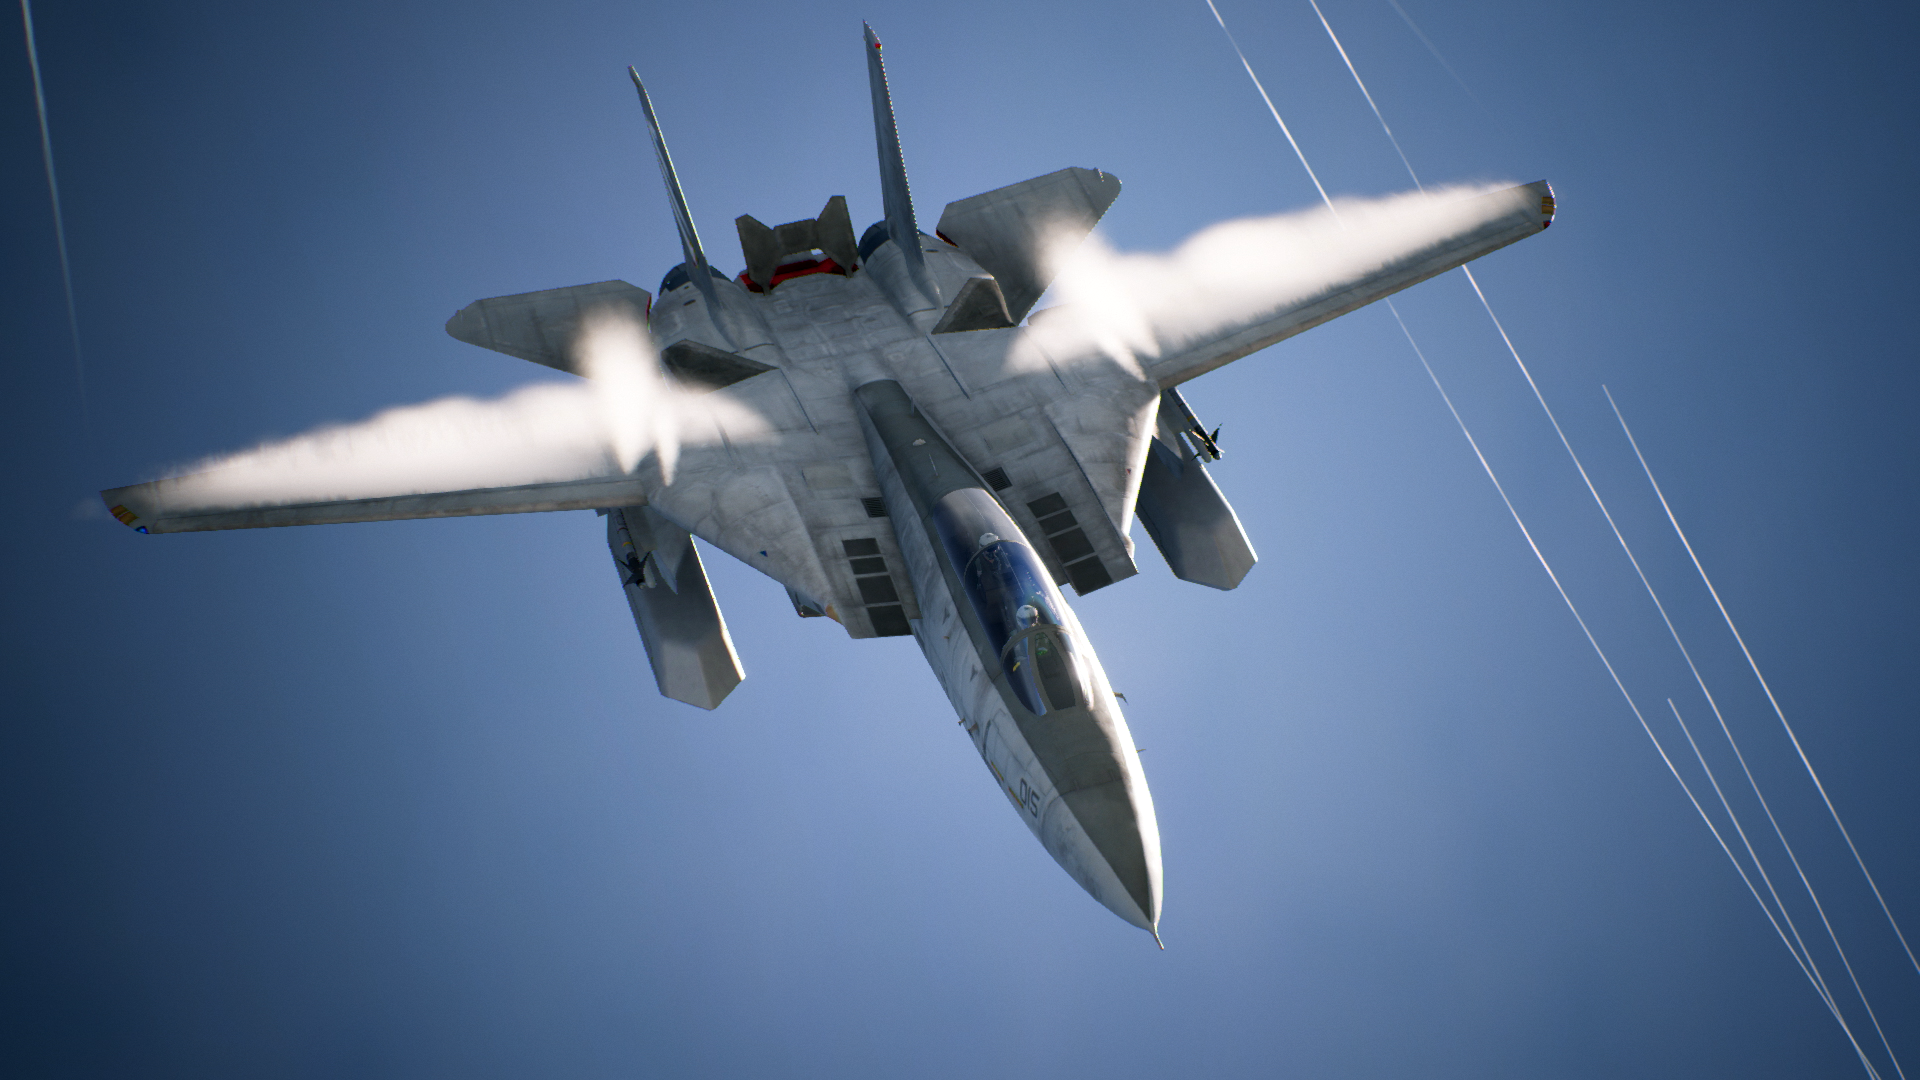 ACE Combat 7: Gamescom in the Bay